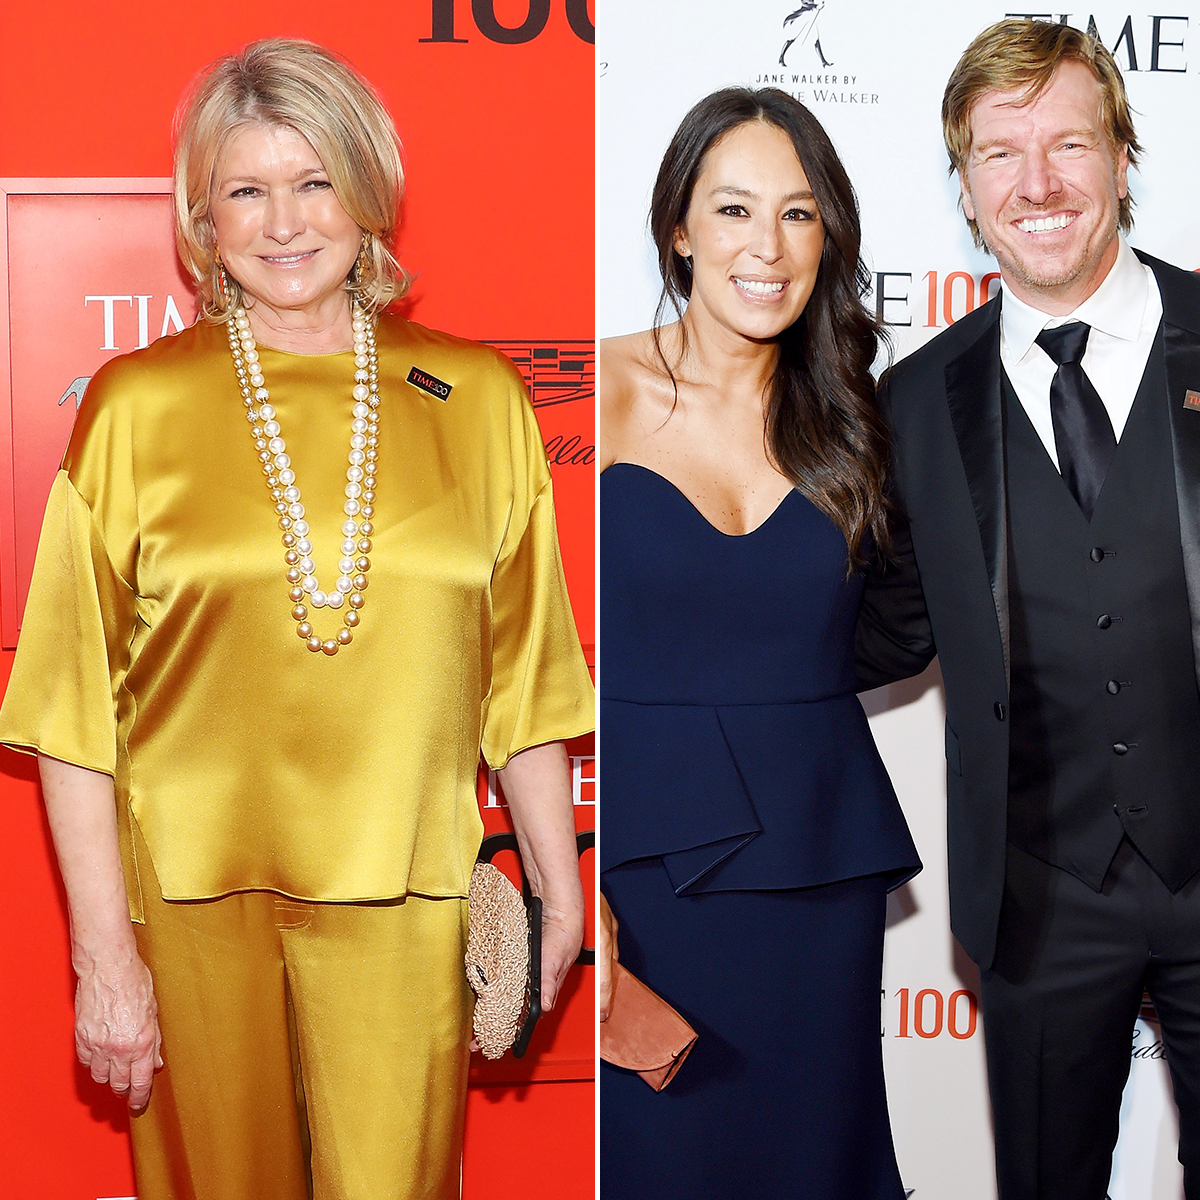 Martha-Stewart-Didn't-Know-Who-Chip-and-Joanna-Gaines-Are